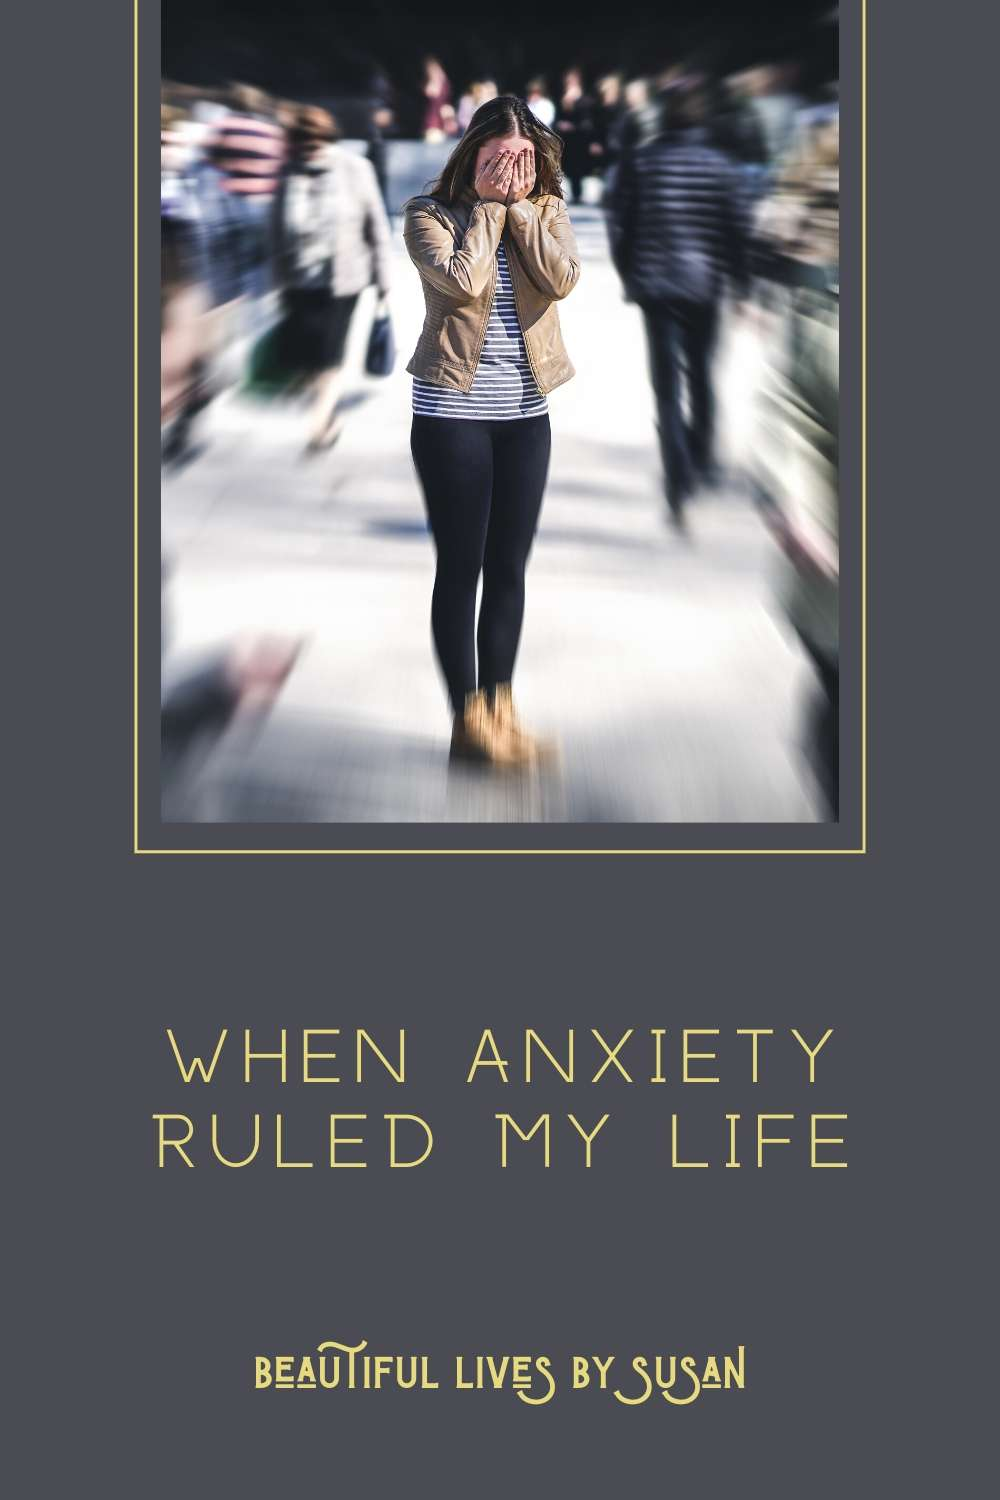 When anxiety ruled my life